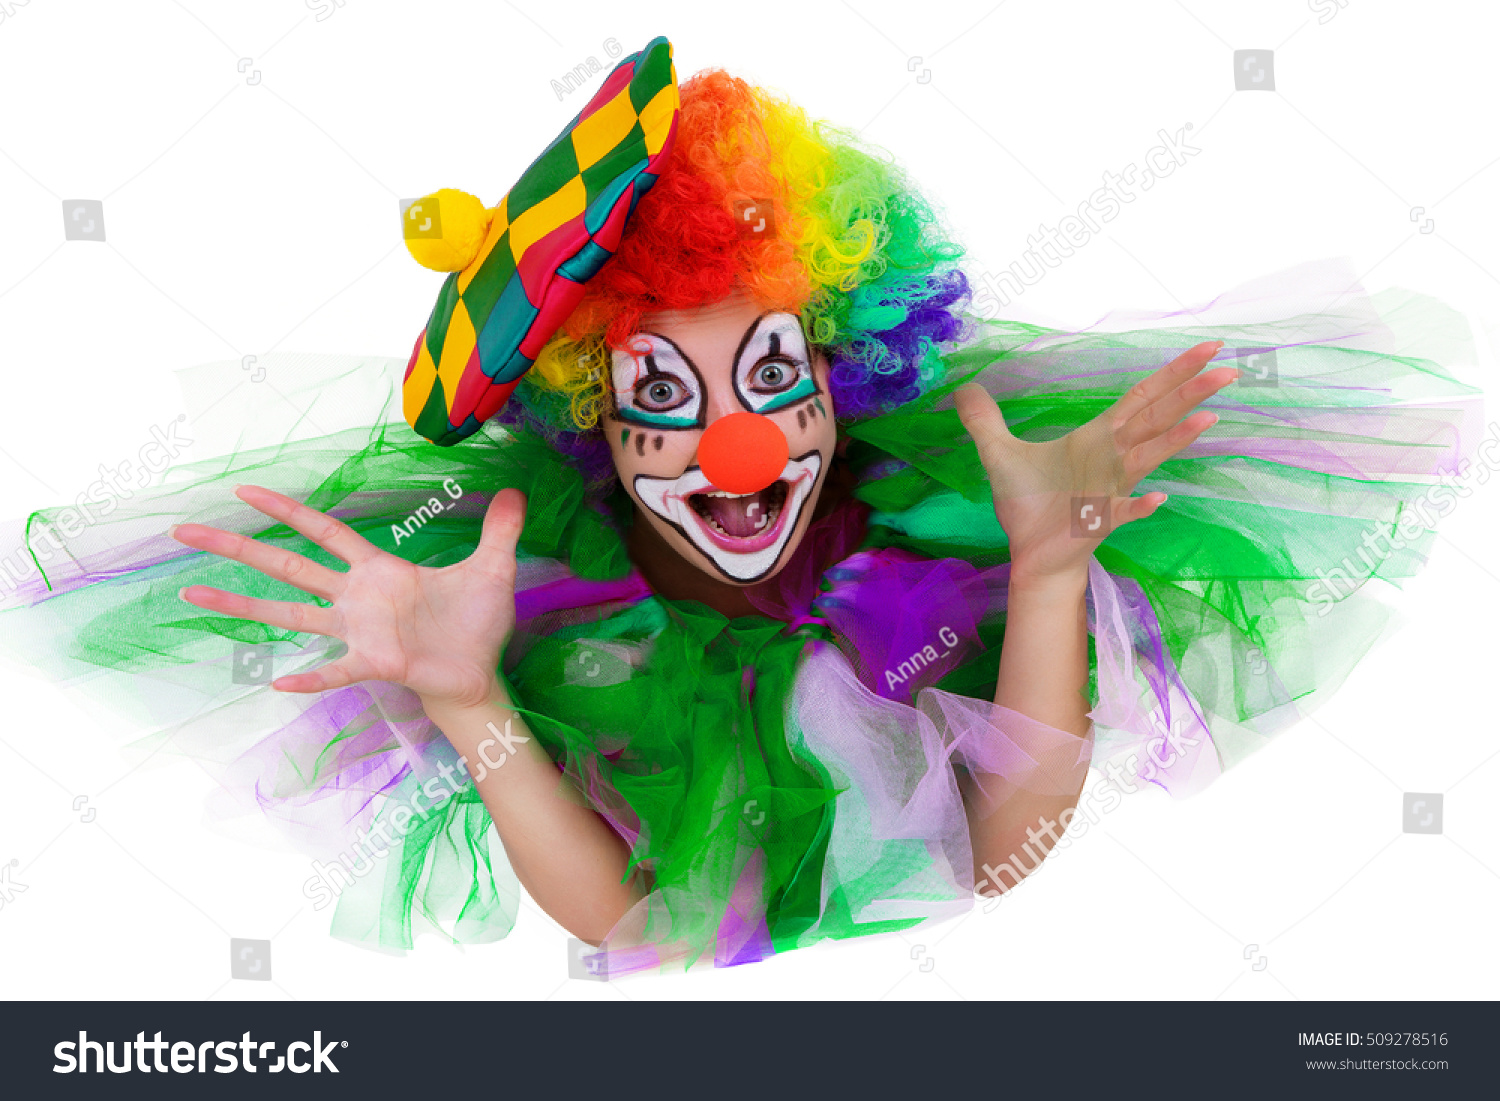 Girl Cap Clown Costume Bouquet Flowers Stock Photo (100% Legal ...